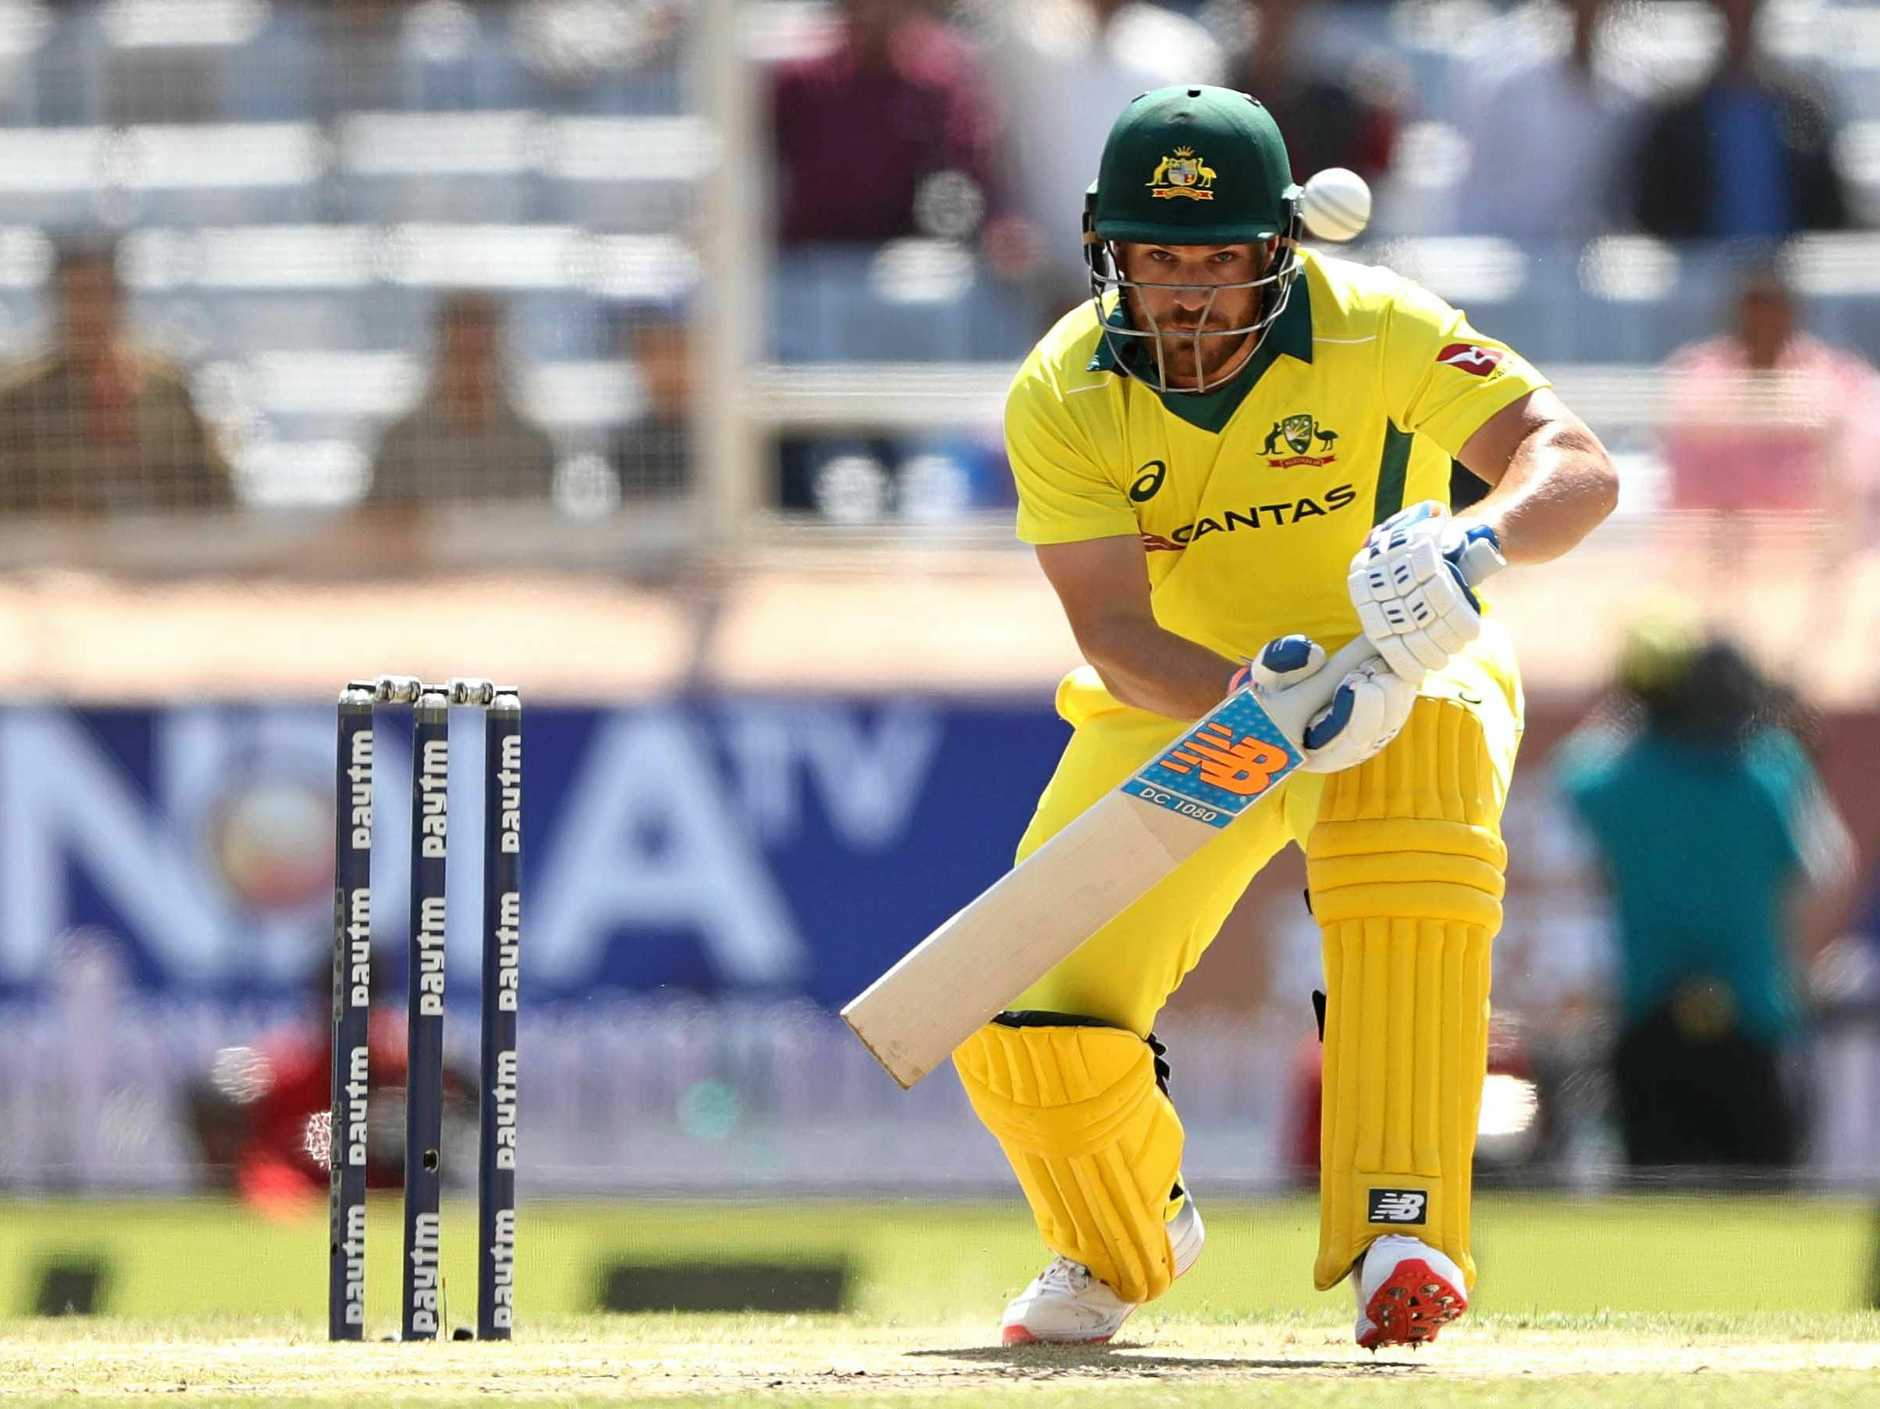 Aaron Finch turned his form around in India. (Photo by Robert Cianflone/Getty Images)